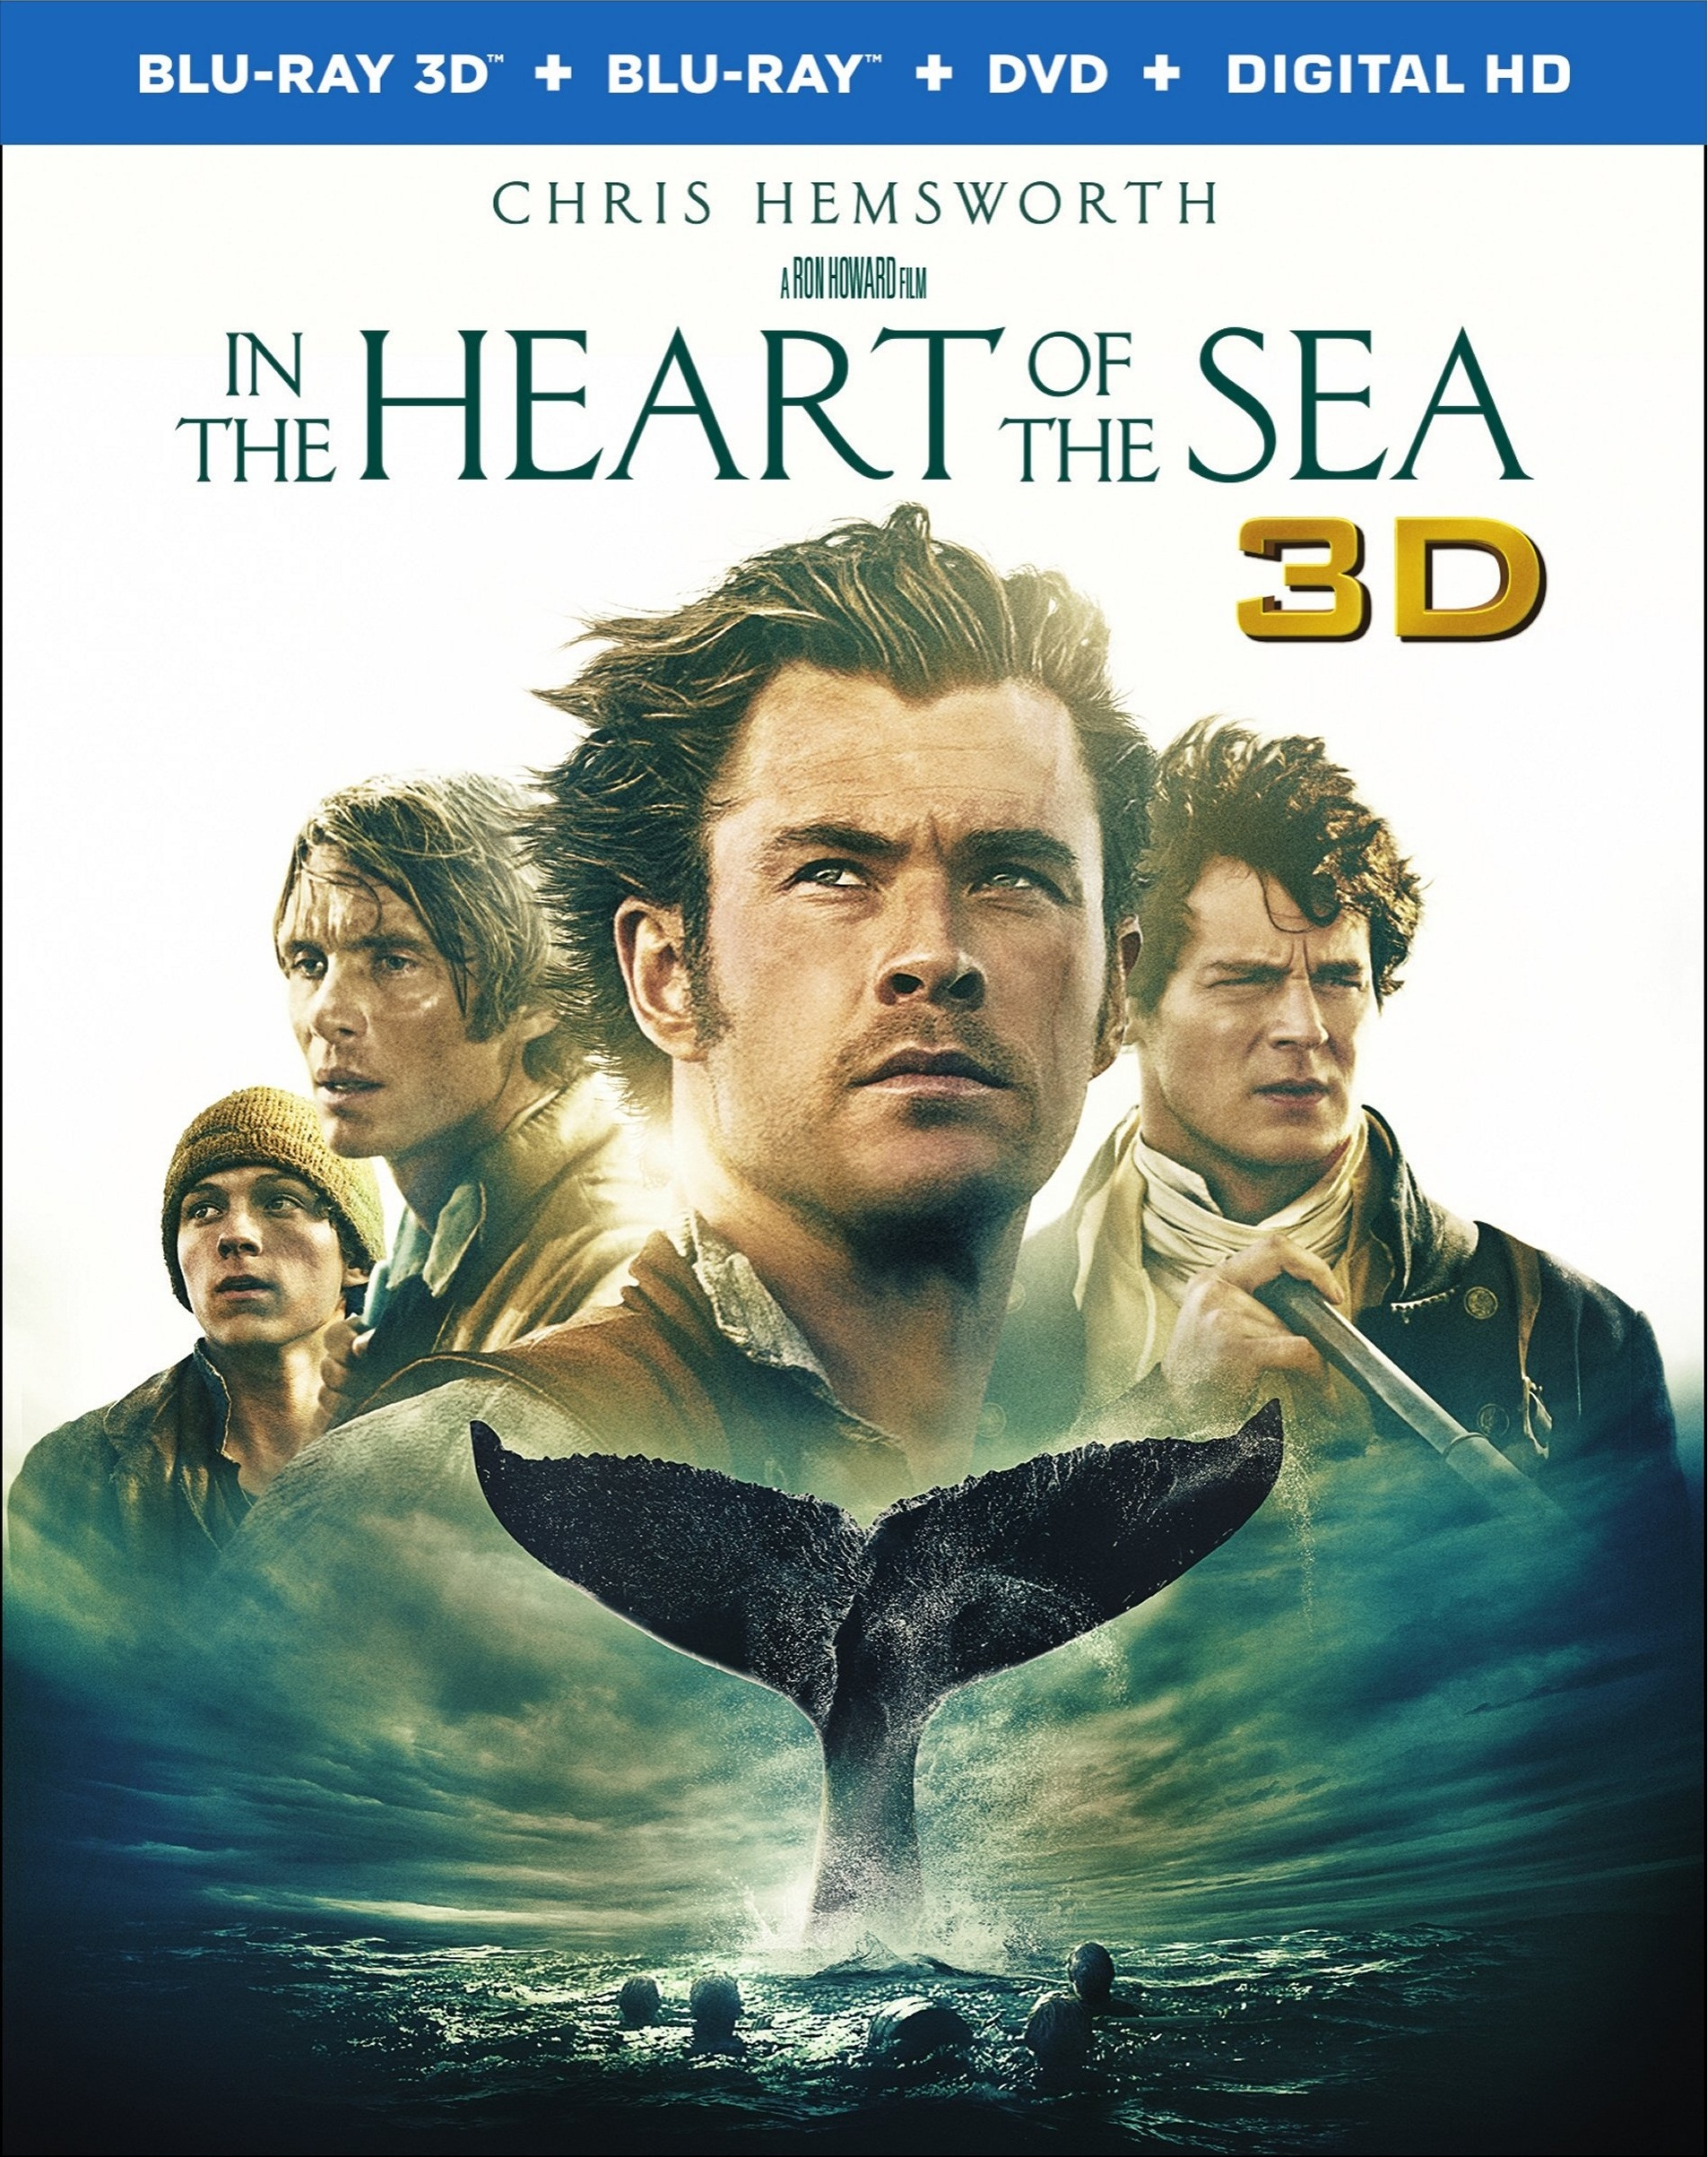 In the Heart of the Sea 3D (2015) Blu-ray